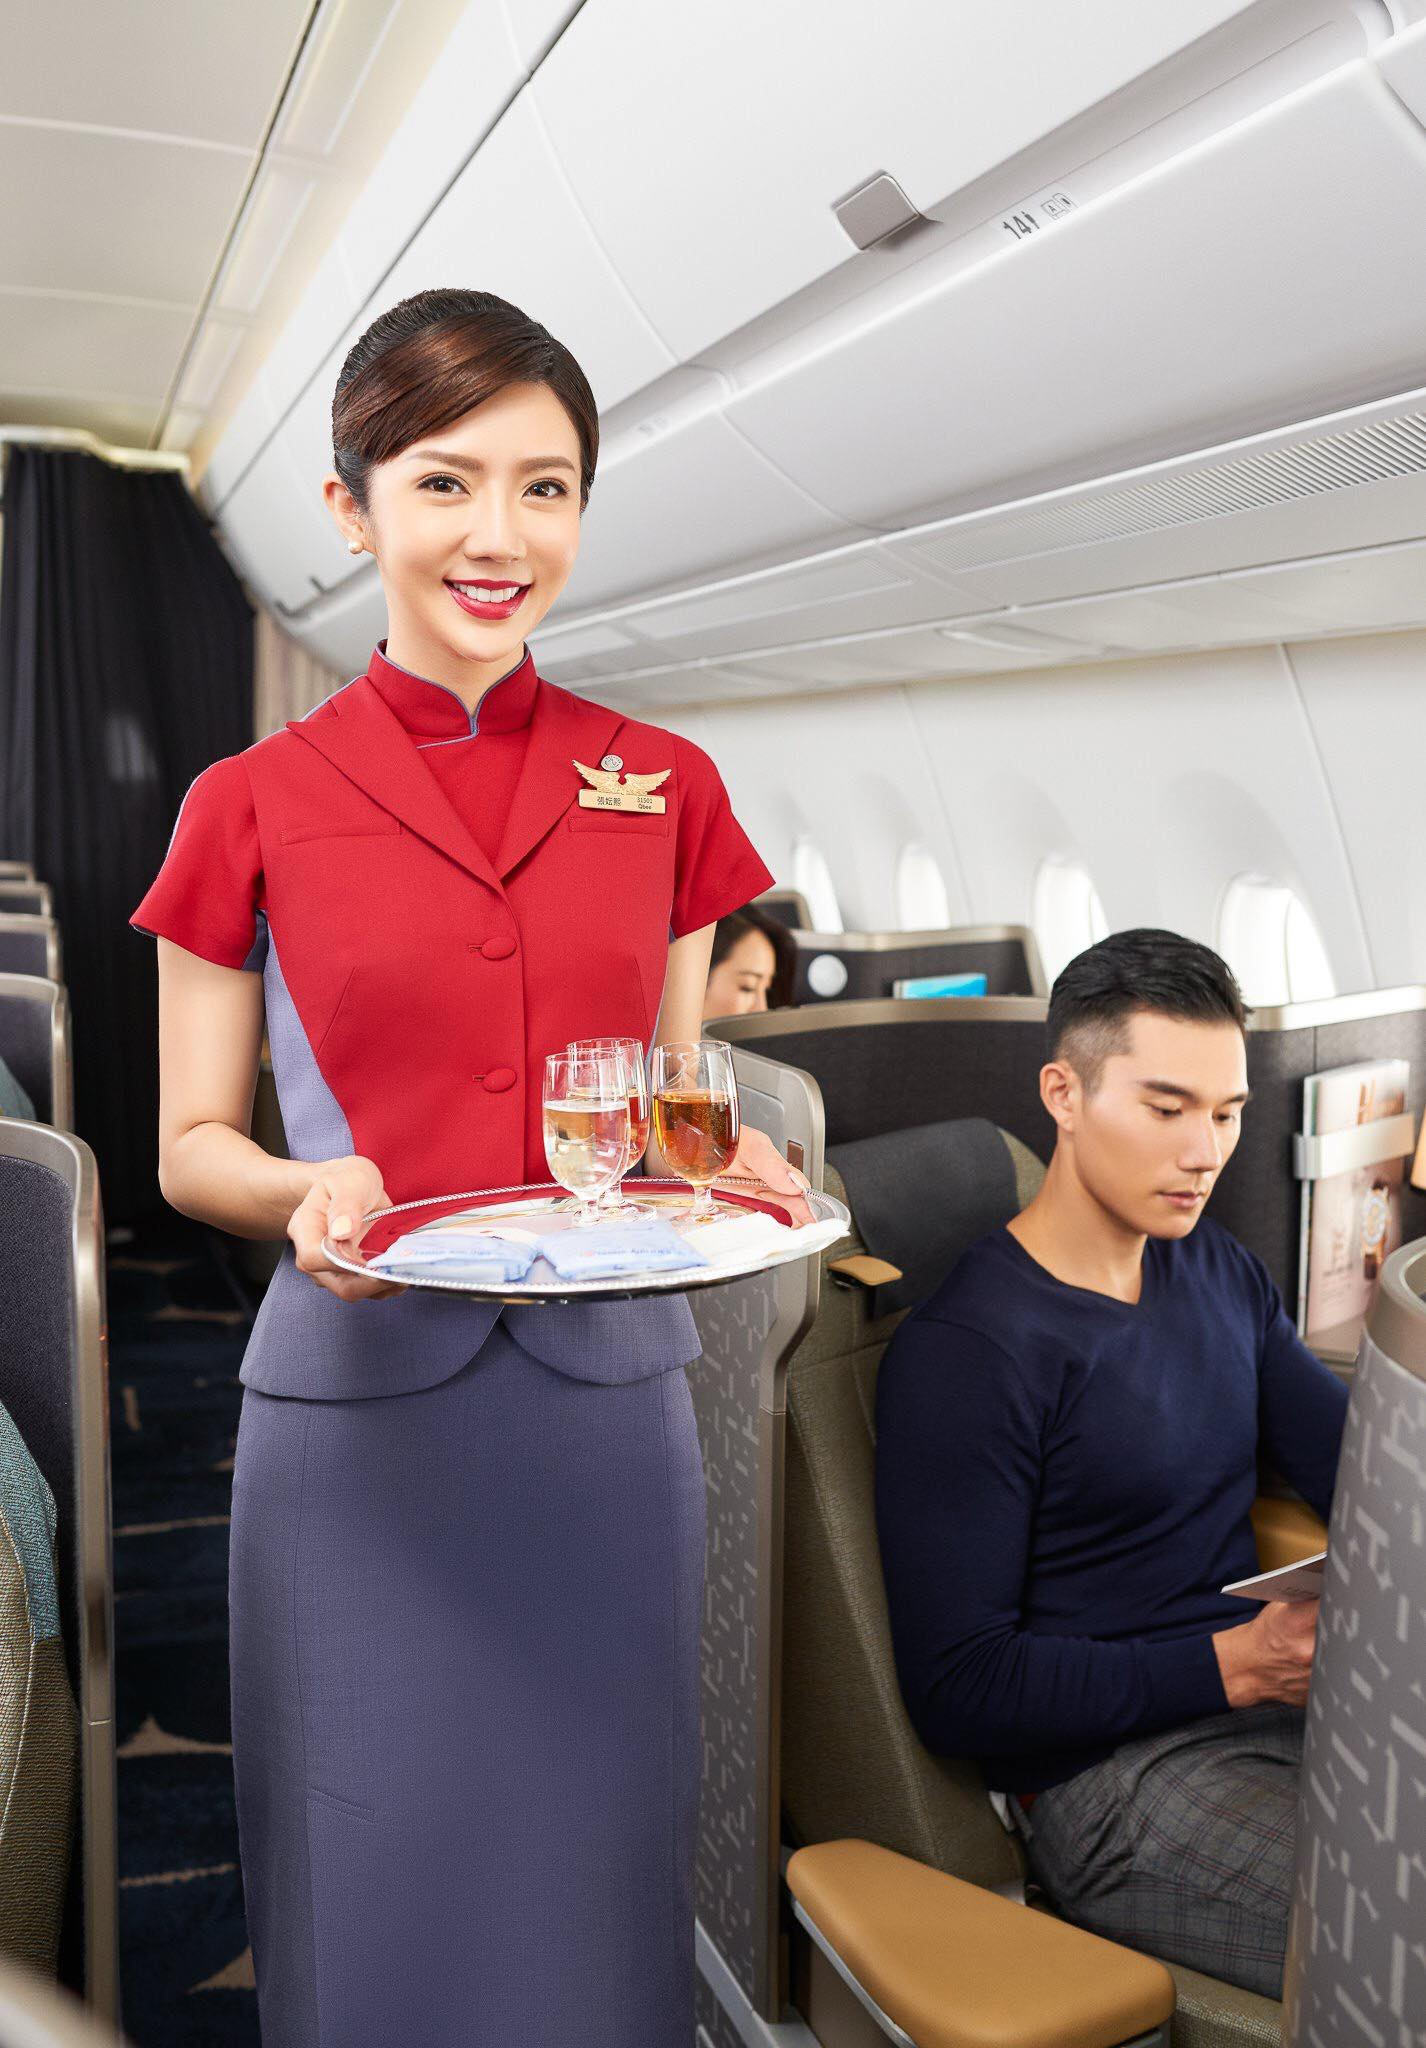 China airline A350 commercial imagine  Photography / Ding zheng Assistant of makeup artist / chi、MuMu Hair / Z-han Zhang assistant of hair stylist / Eugene